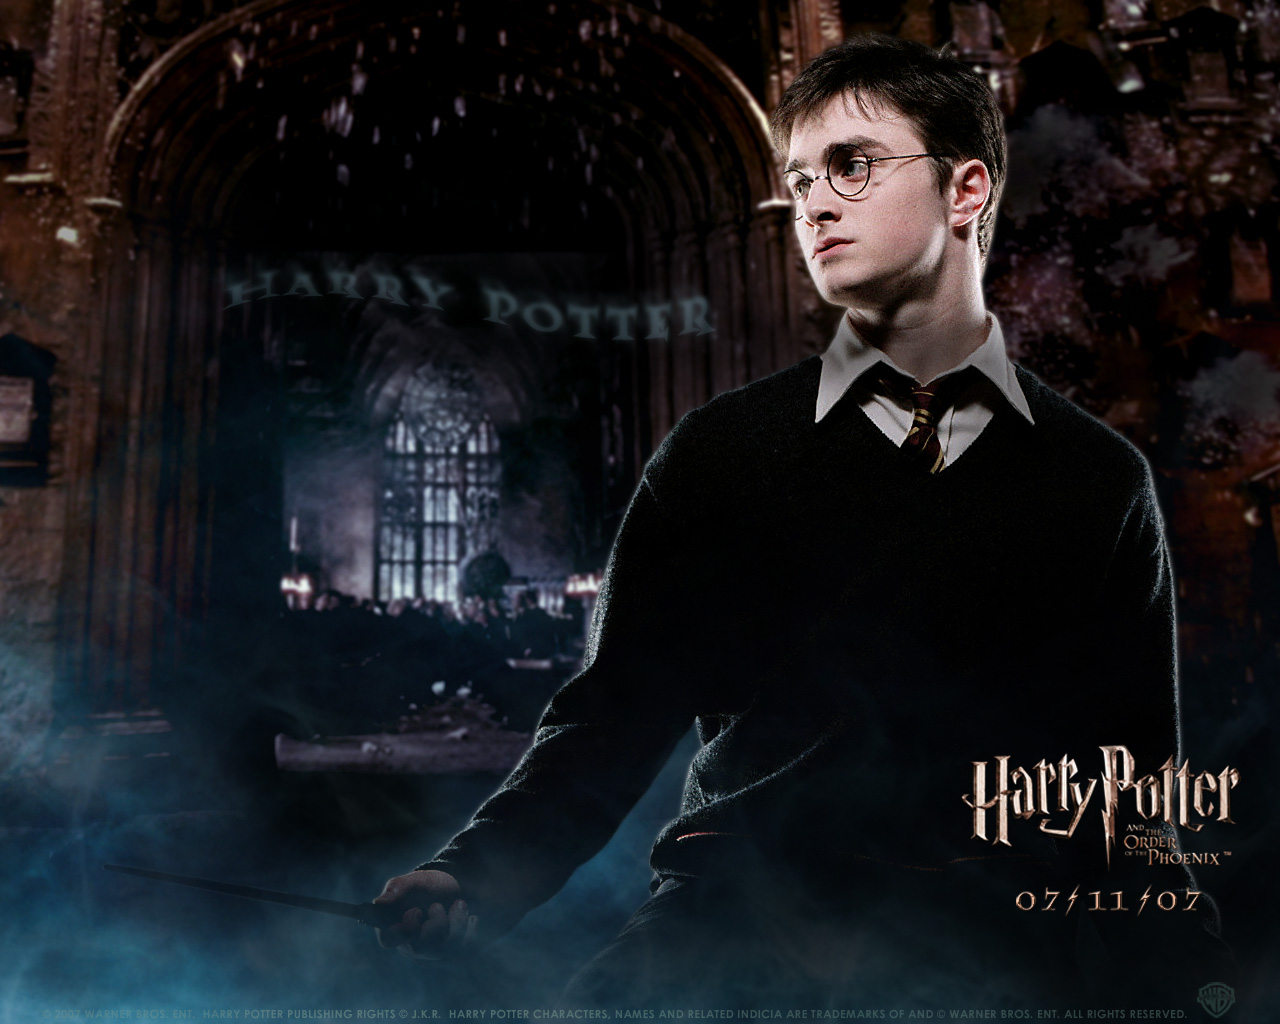 http://1.bp.blogspot.com/_E2FozapVj3I/TI41BHmMhnI/AAAAAAAAAO0/oSOkHZfQYlE/s1600/Daniel_Radcliffe_in_Harry_Potter_and_the_Order_of_the_Phoenix_Wallpaper_13_1280.jpg